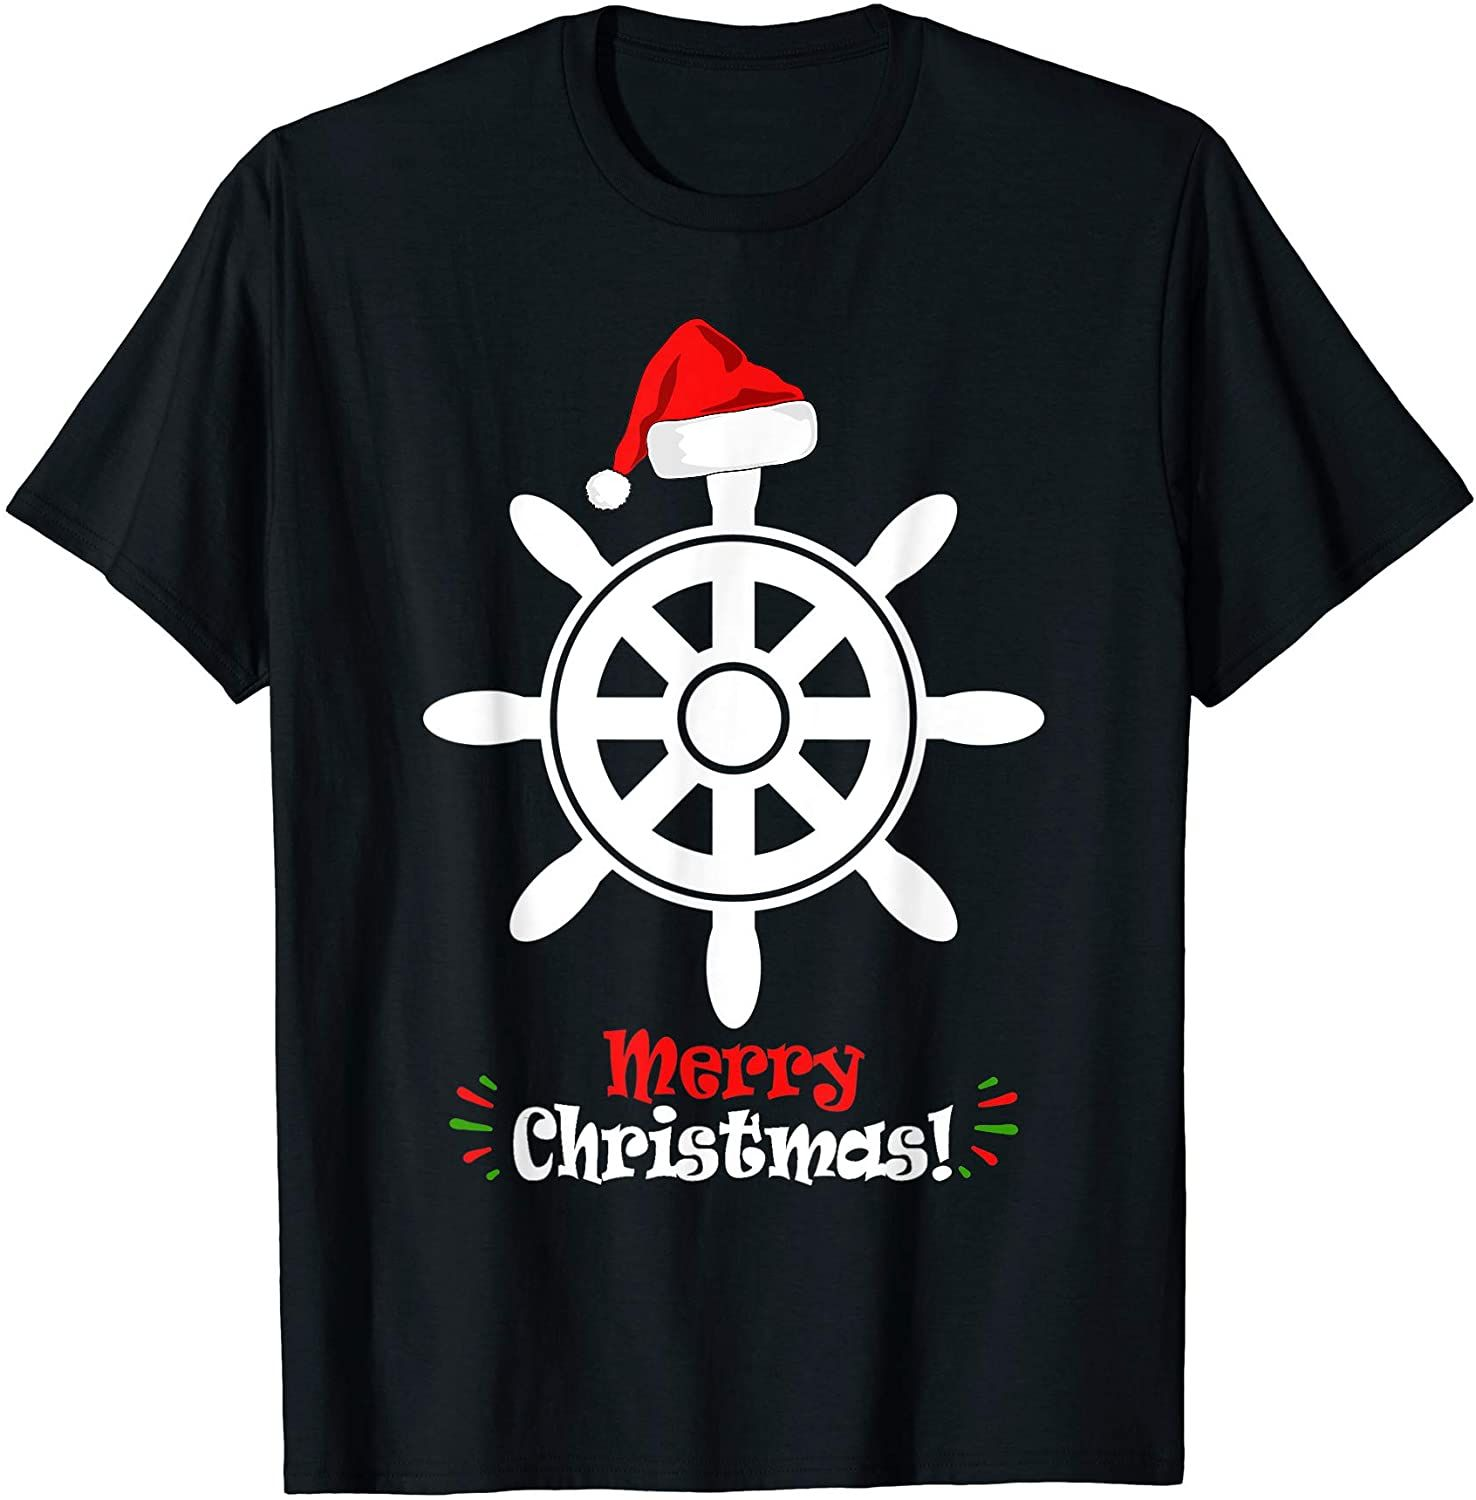 Boat owner novelty christmas gift idea tshirt in 2020